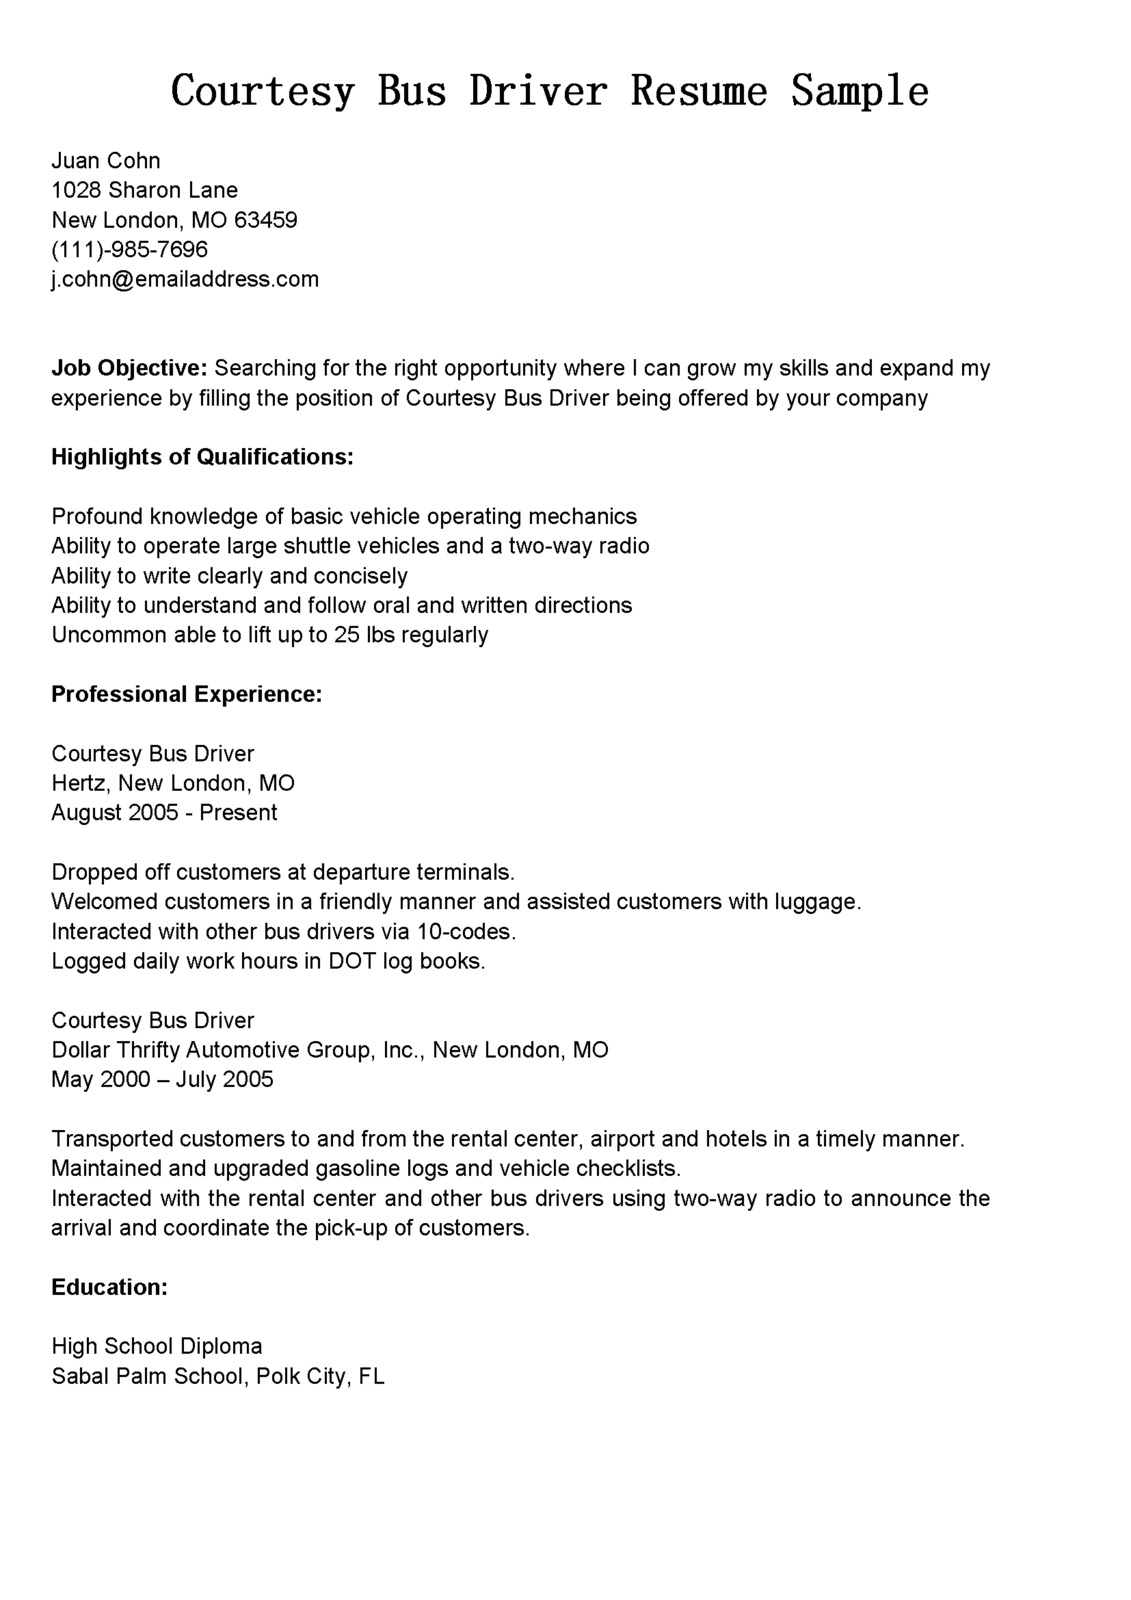 Resume objective for ups delivery position